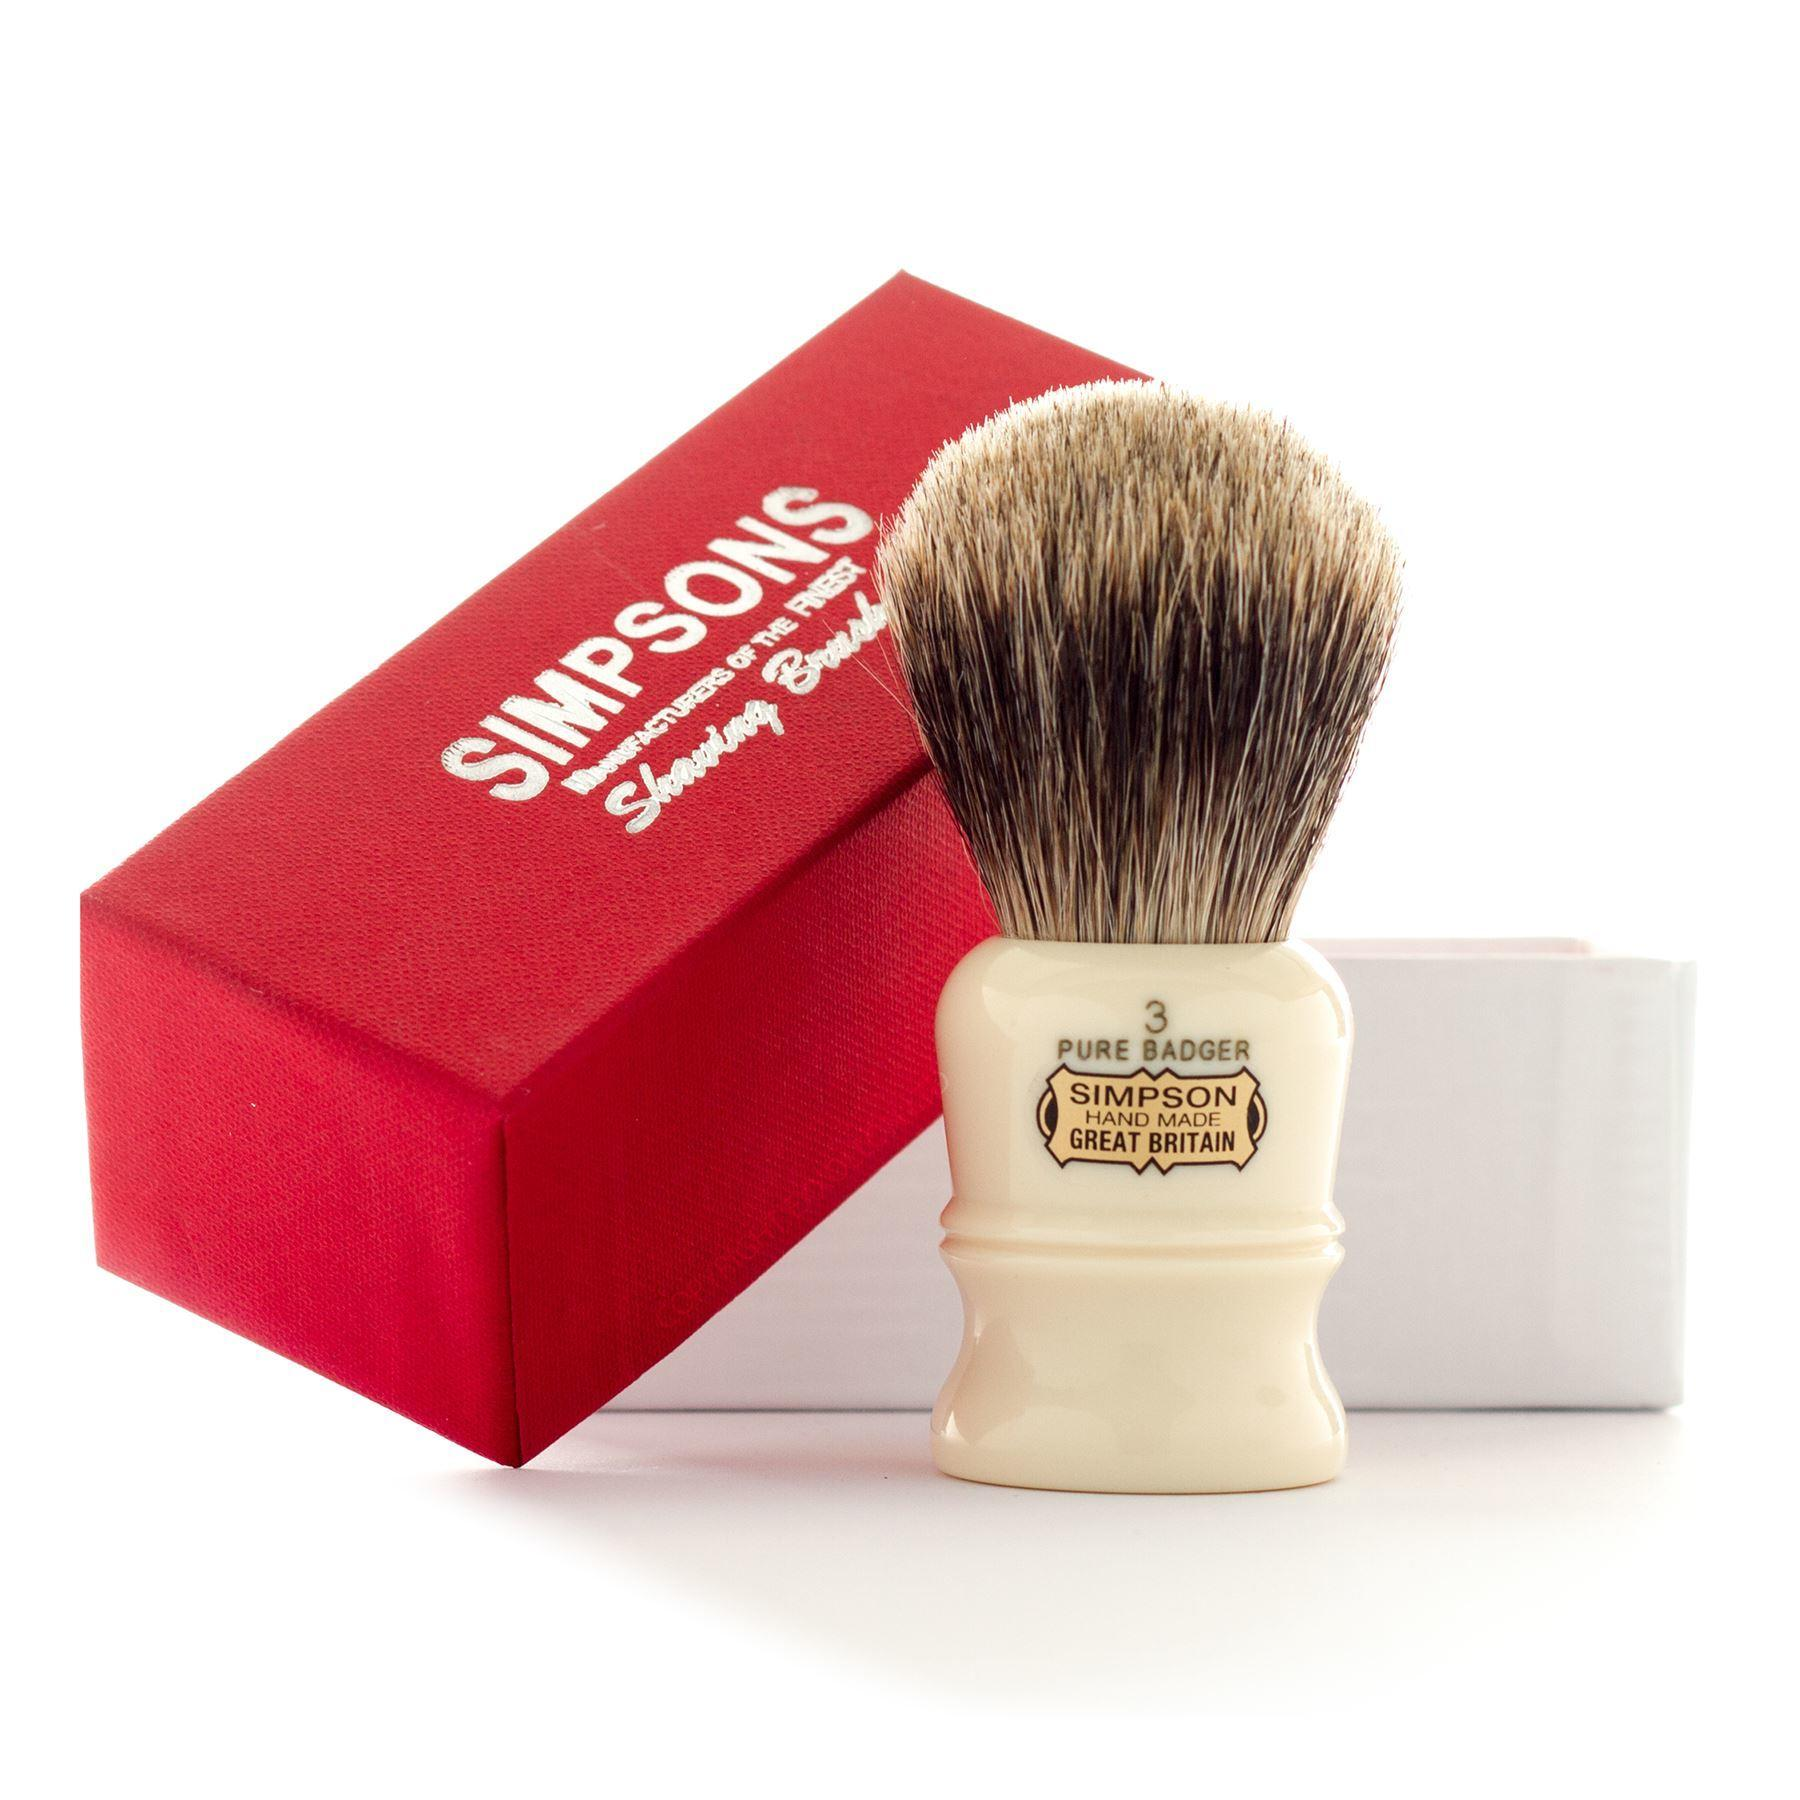 Simpsons Duke D3 Pure Badger Hair Shaving Brush